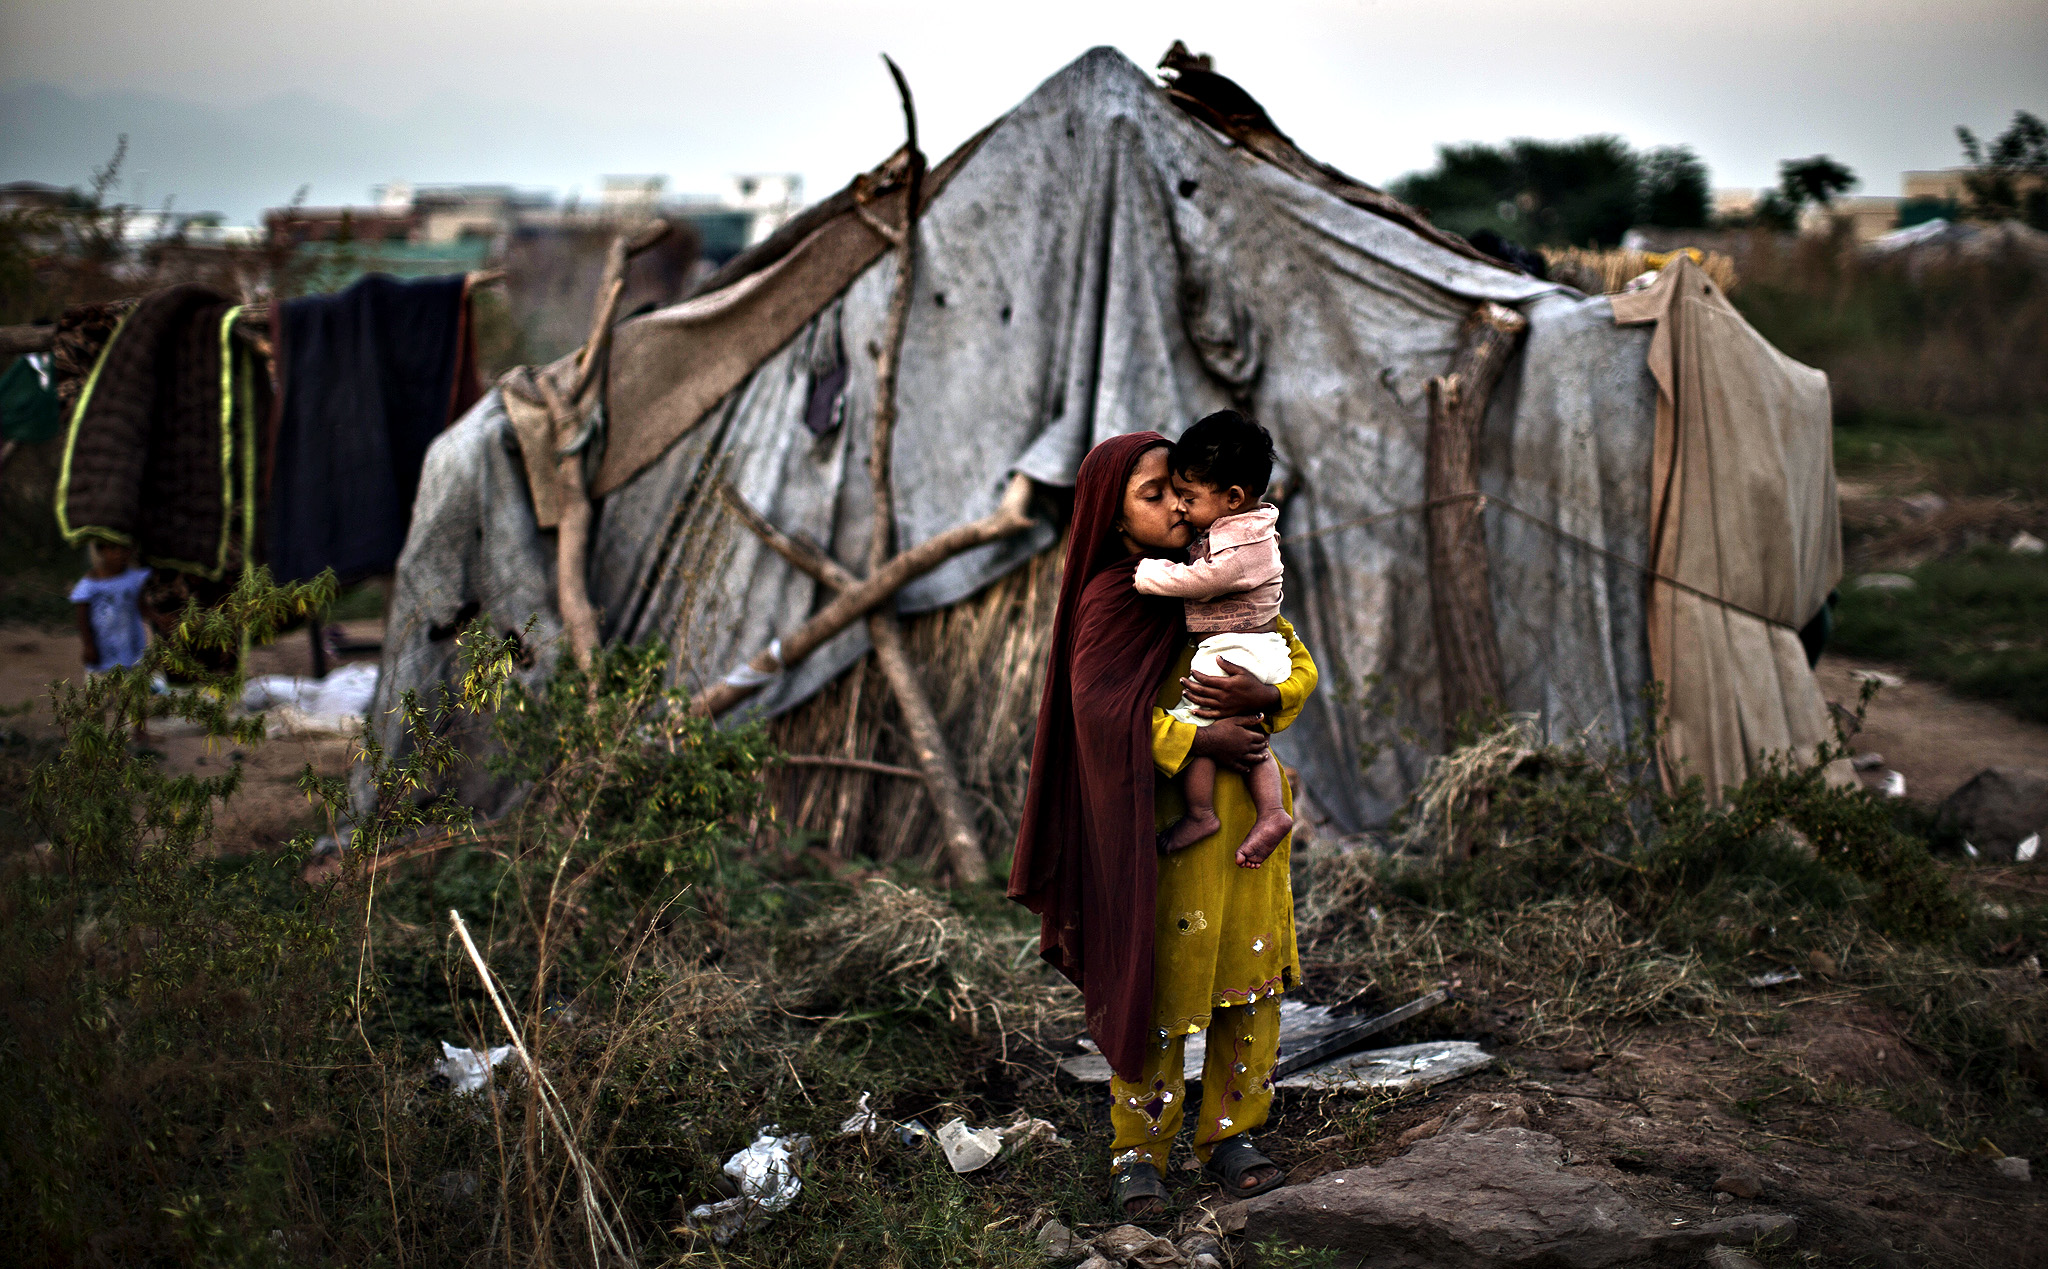 A Pakistani girl comforts her brother near her family's makeshift tent in a slum in Islamabad, Pakistan, Monday, Oct. 21, 2013. Slums, which are built on illegal lands, have neither running water or sewage disposal.